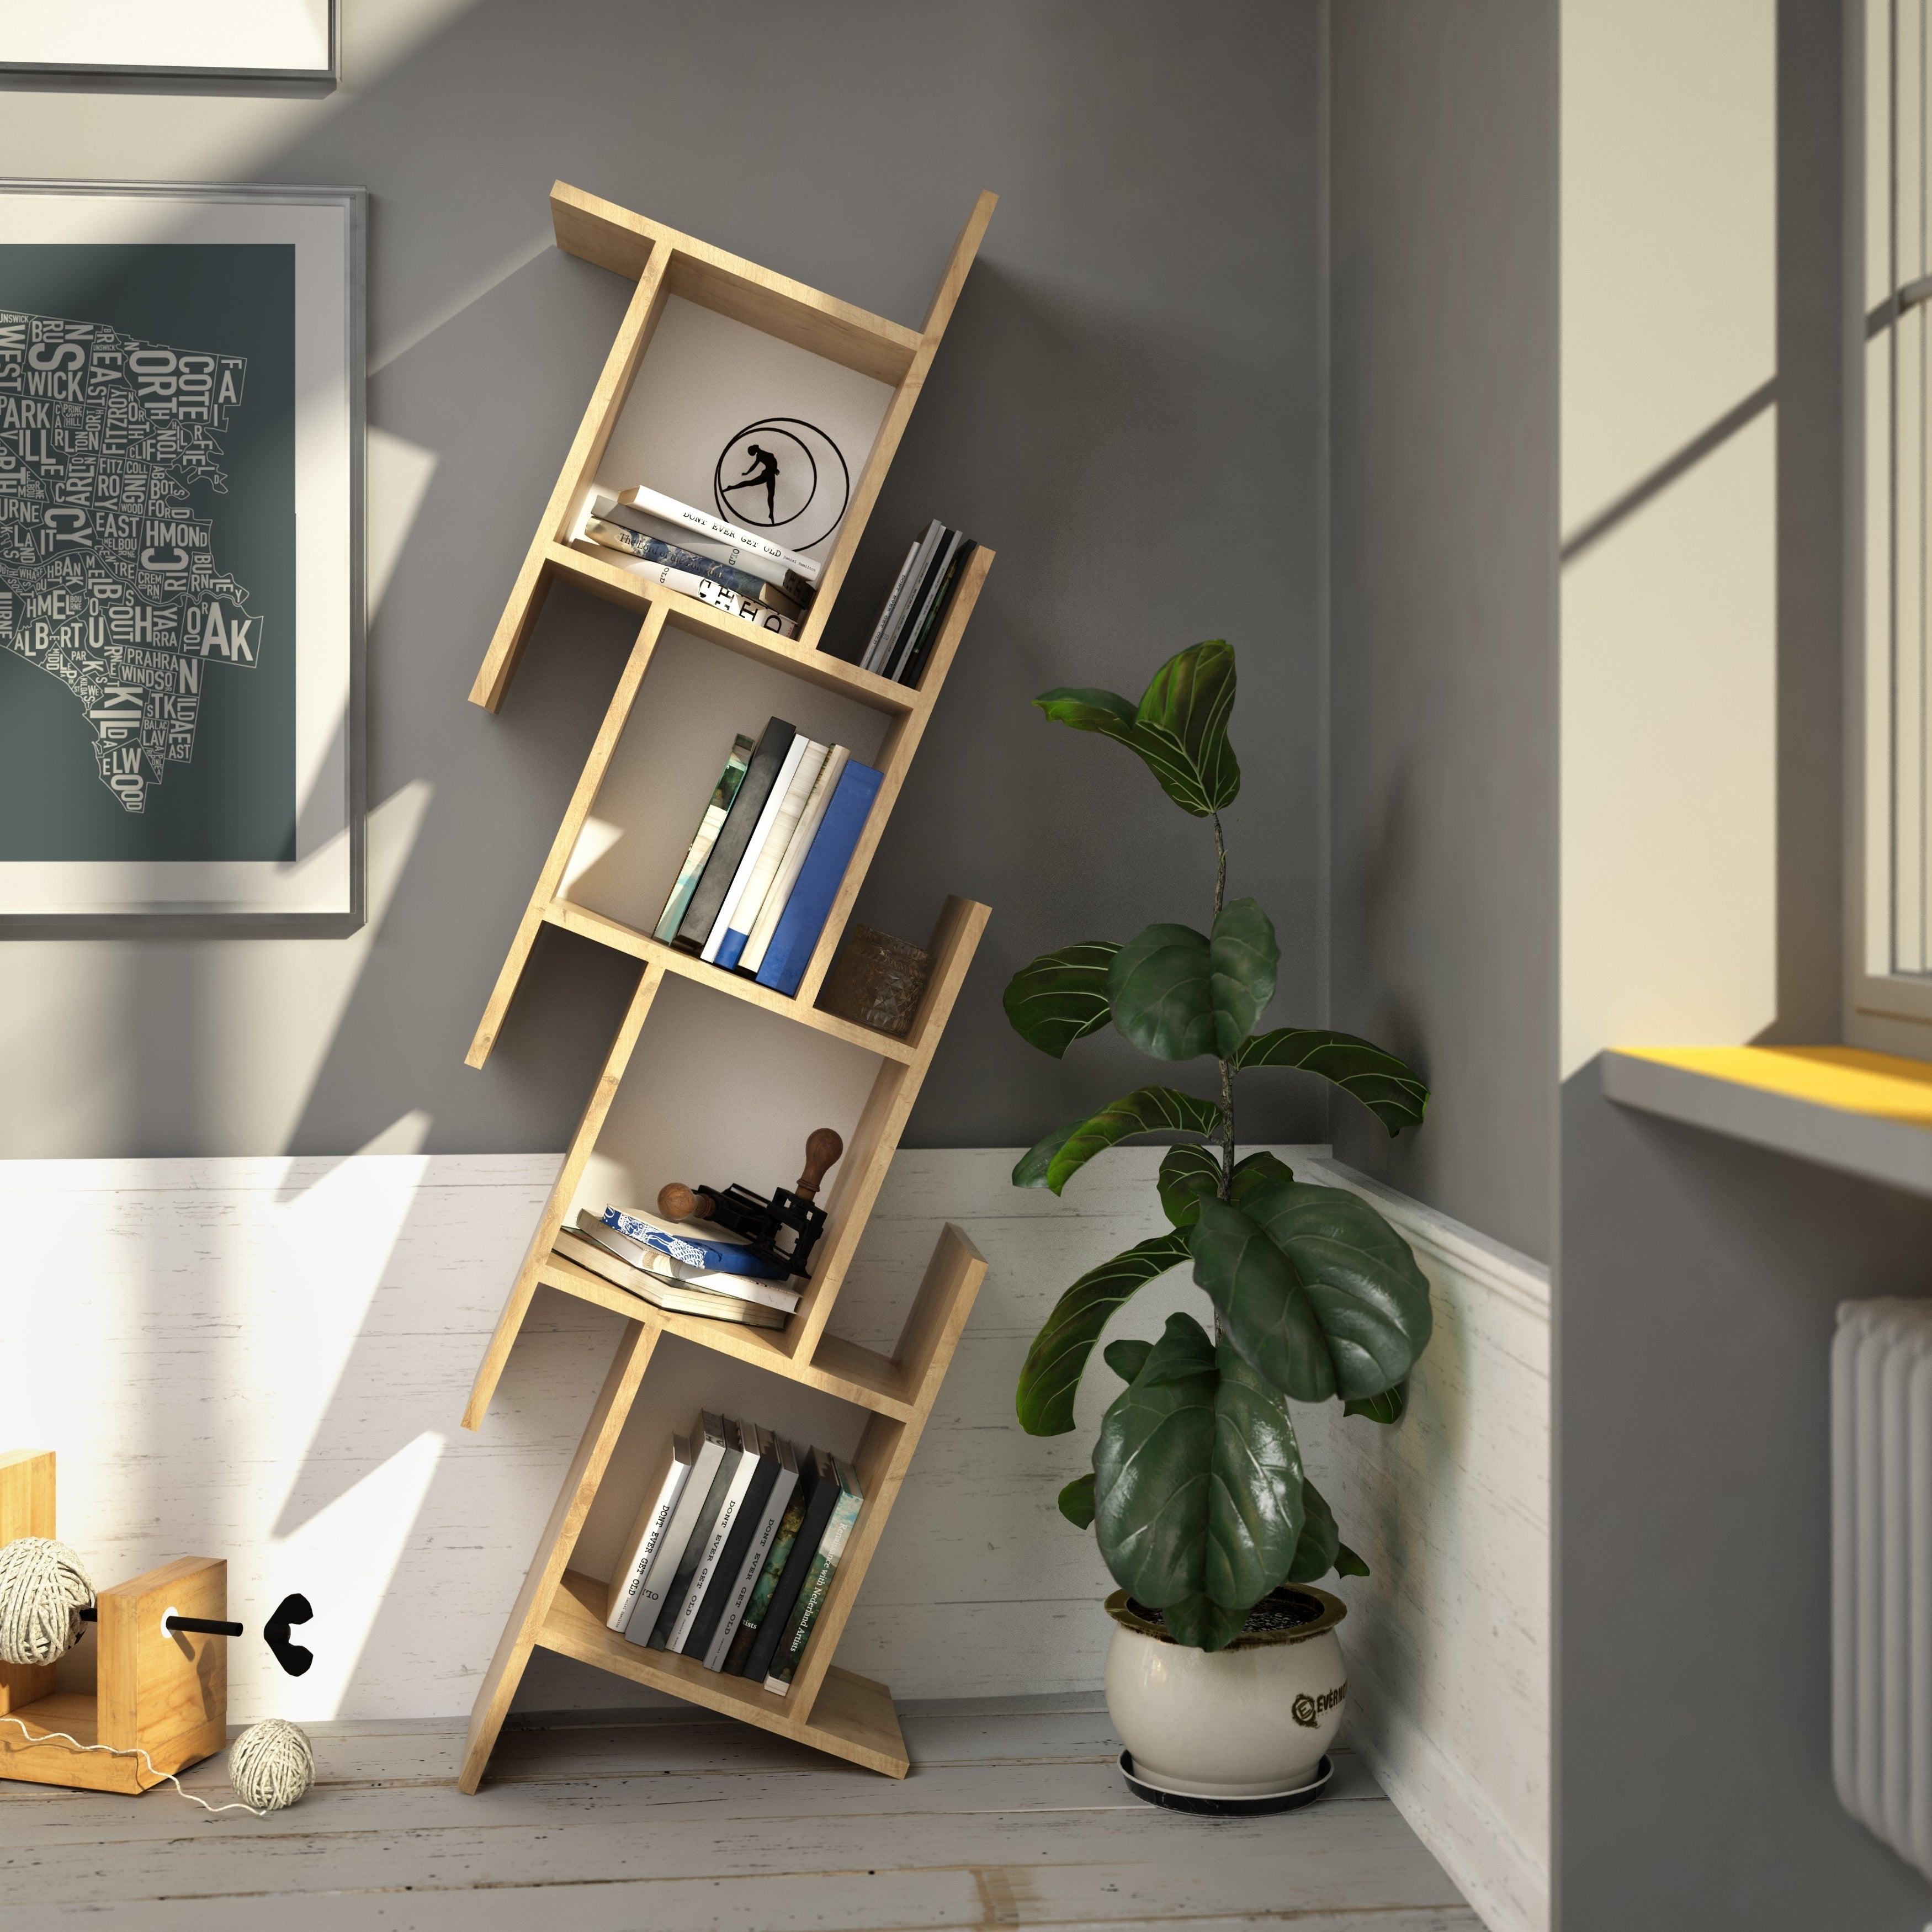 Decorotika Broadway 5 Ft Modern Floating Asymmetrical Cubic Bookshelf Bookcase Shelving Unit With Color Options 63 Inch